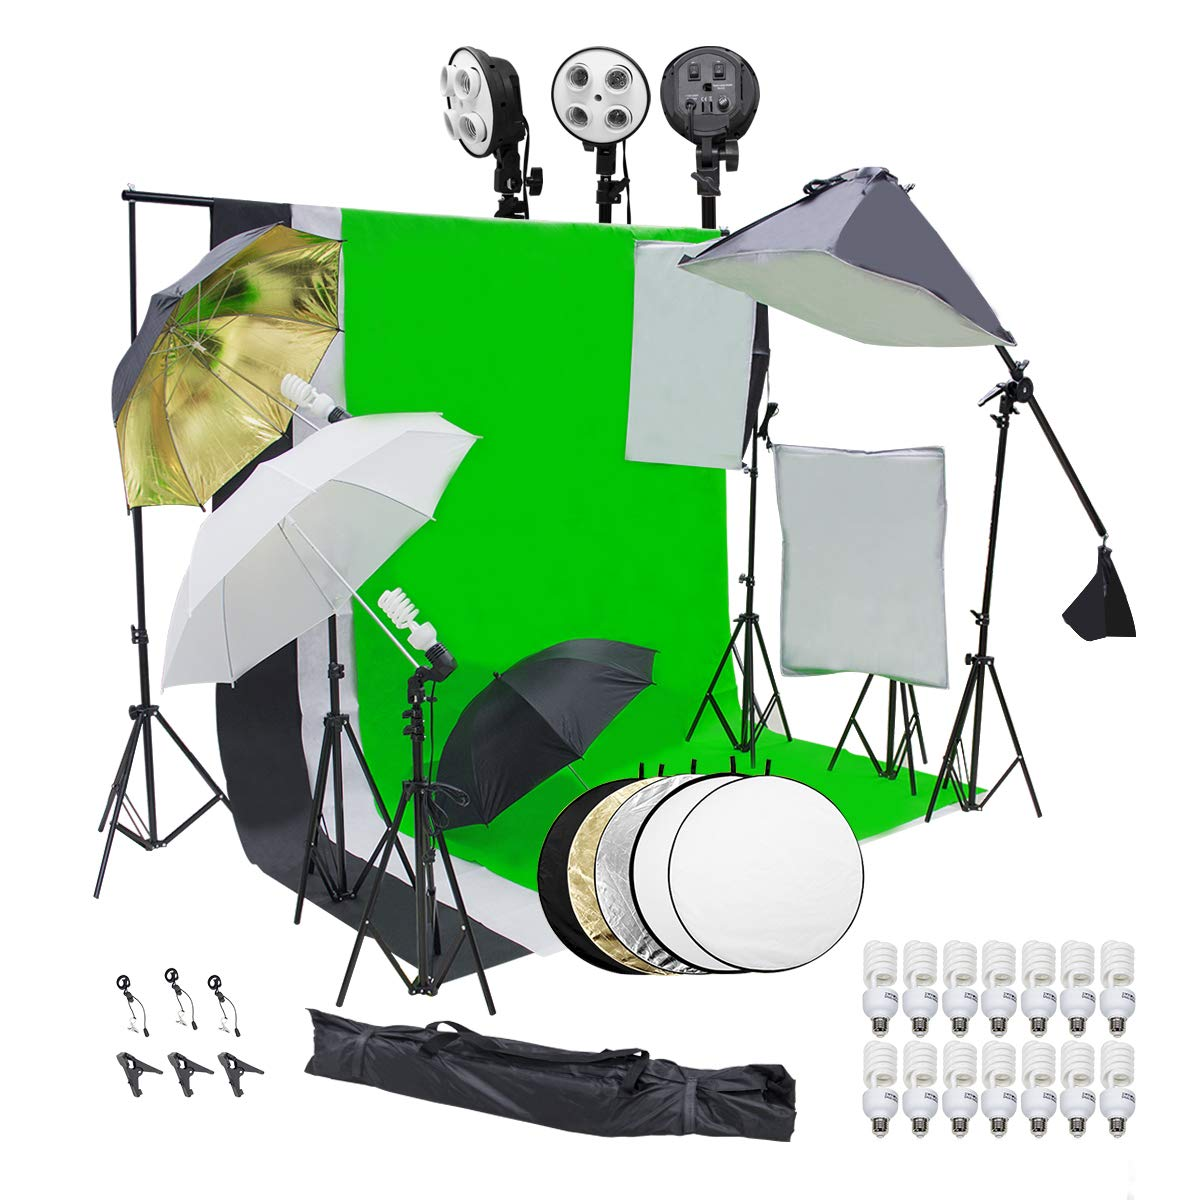 Wisamic Photography Video Studio Lighting Kit, Background Support System 10ft x 6.6ft/2MX3M with 3 Color Backdrop, 3 Umbrella, 3 Softbox, Continuous Lighting Kit for Photo Video Shooting Photography by Wisamic (Image #1)